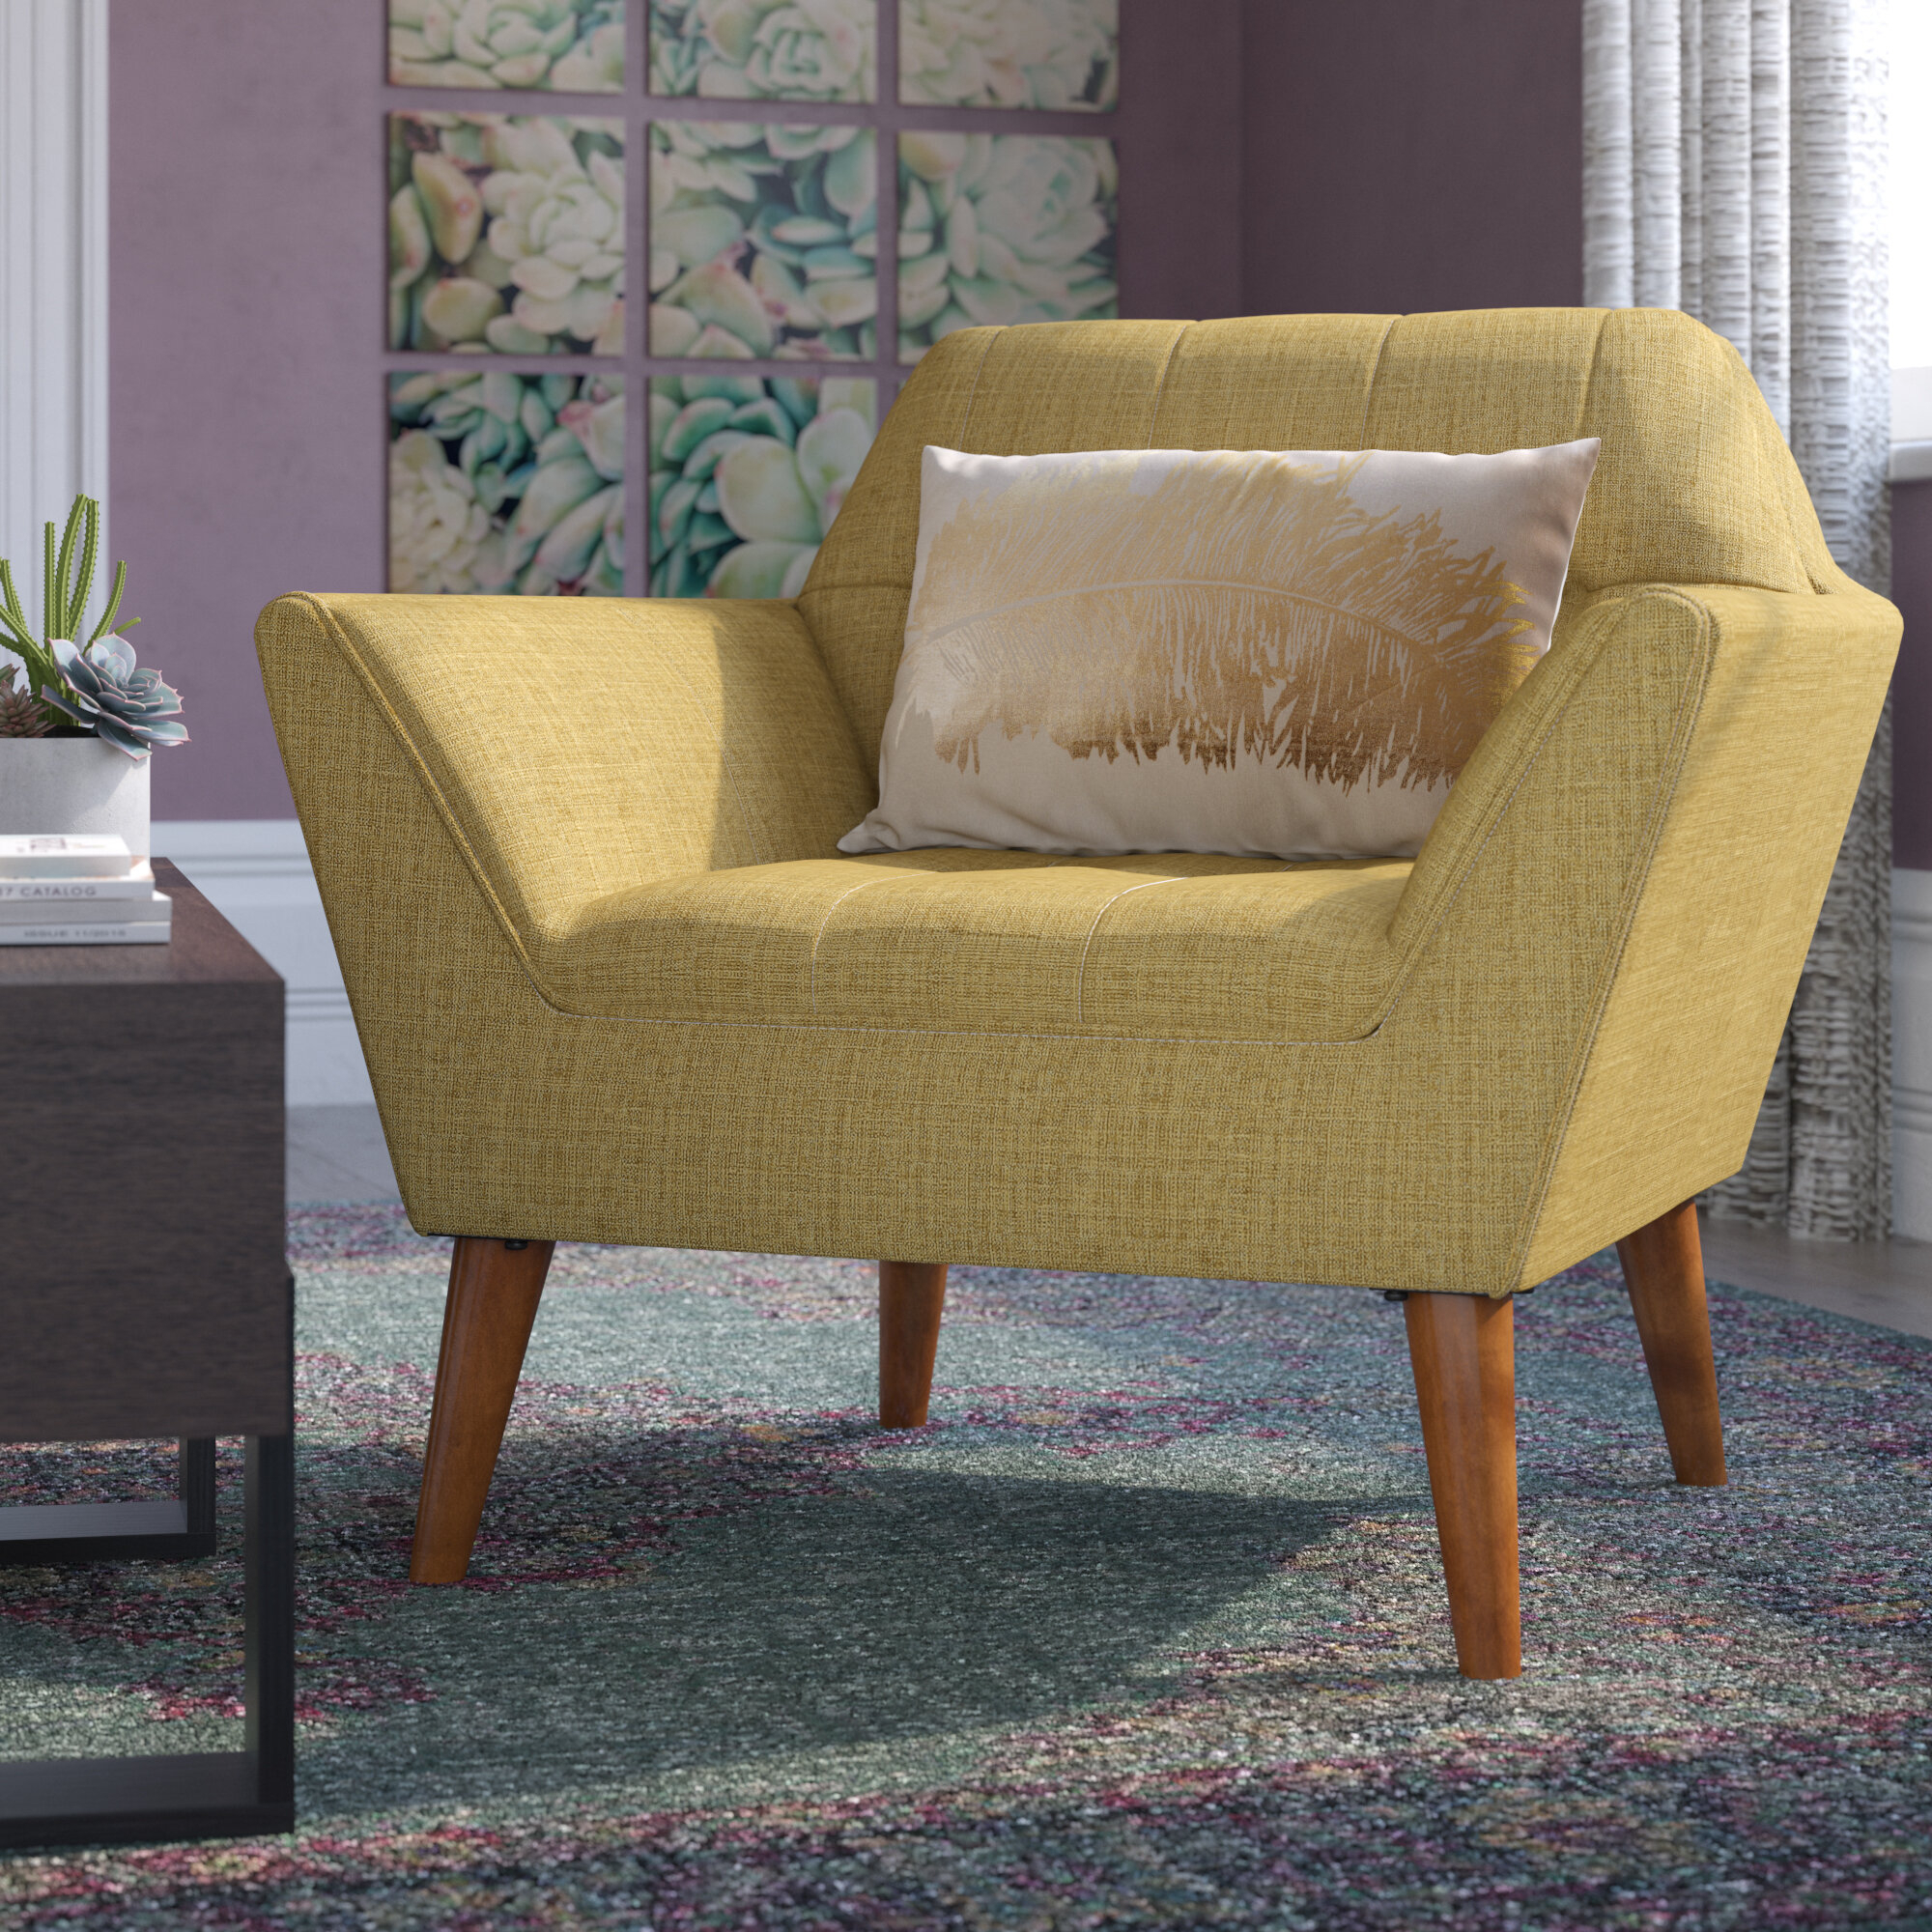 "Belz 38"" W Tufted Polyester Armchair Within Belz Tufted Polyester Armchairs (View 2 of 15)"